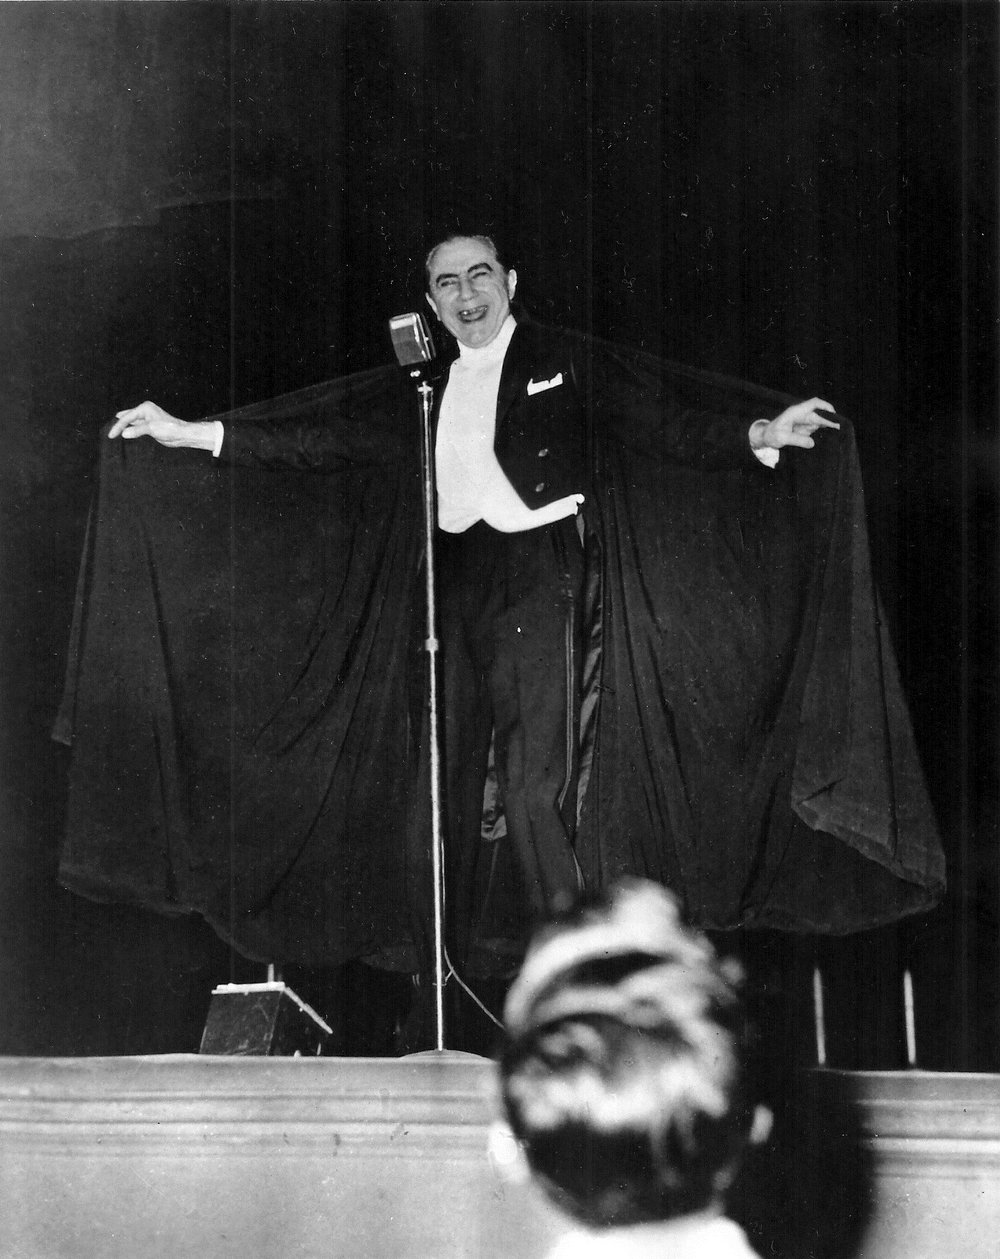 Bela Lugosi during a 1950's stage show.